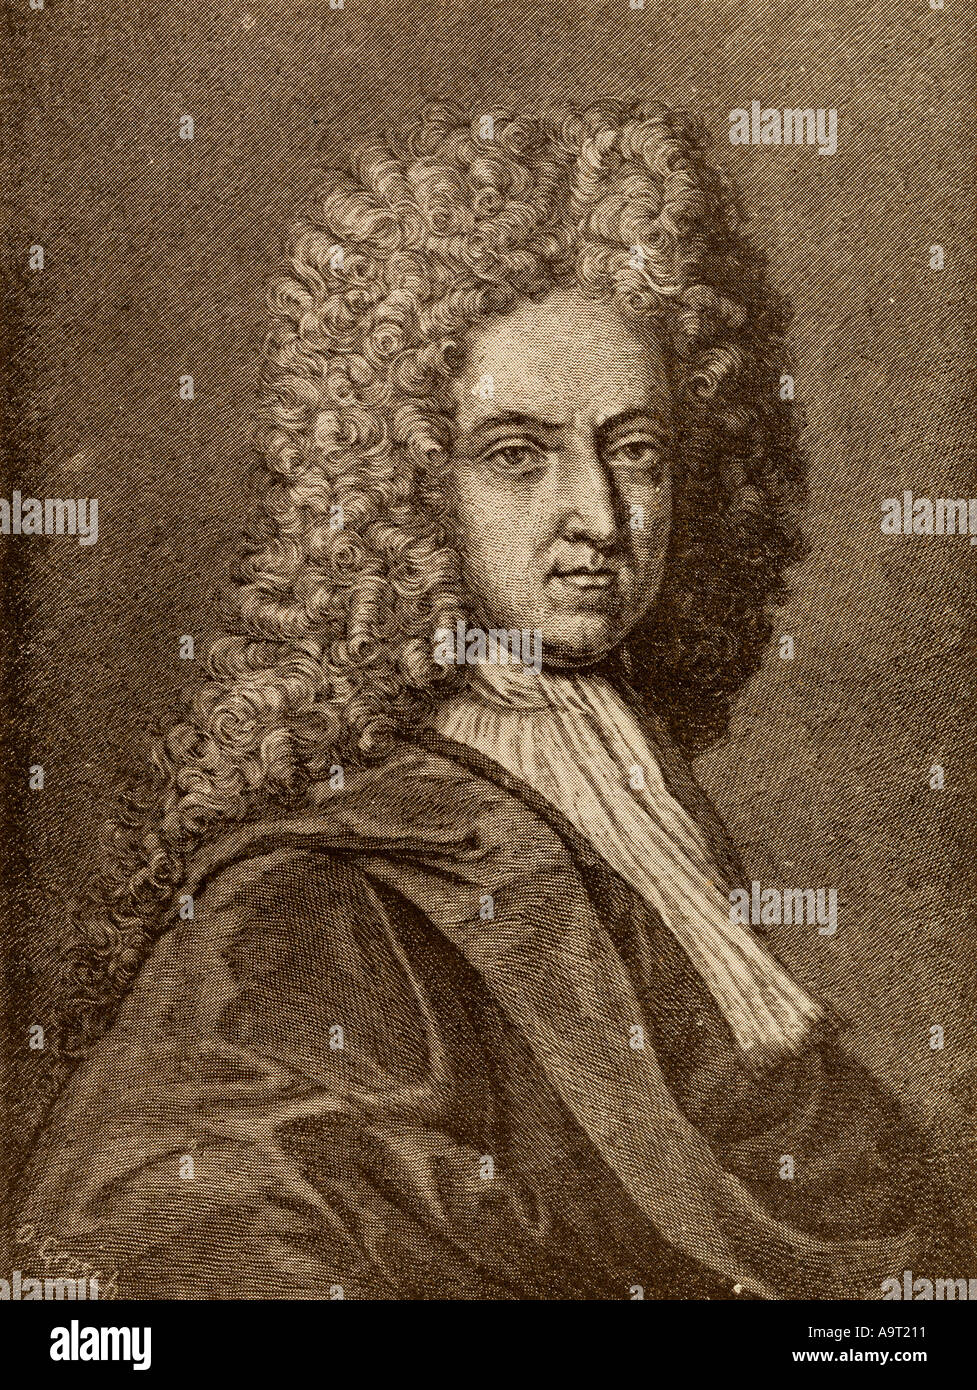 Daniel Defoe, 1660 - 1731. English trader, writer, journalist, pamphleteer  and spy.